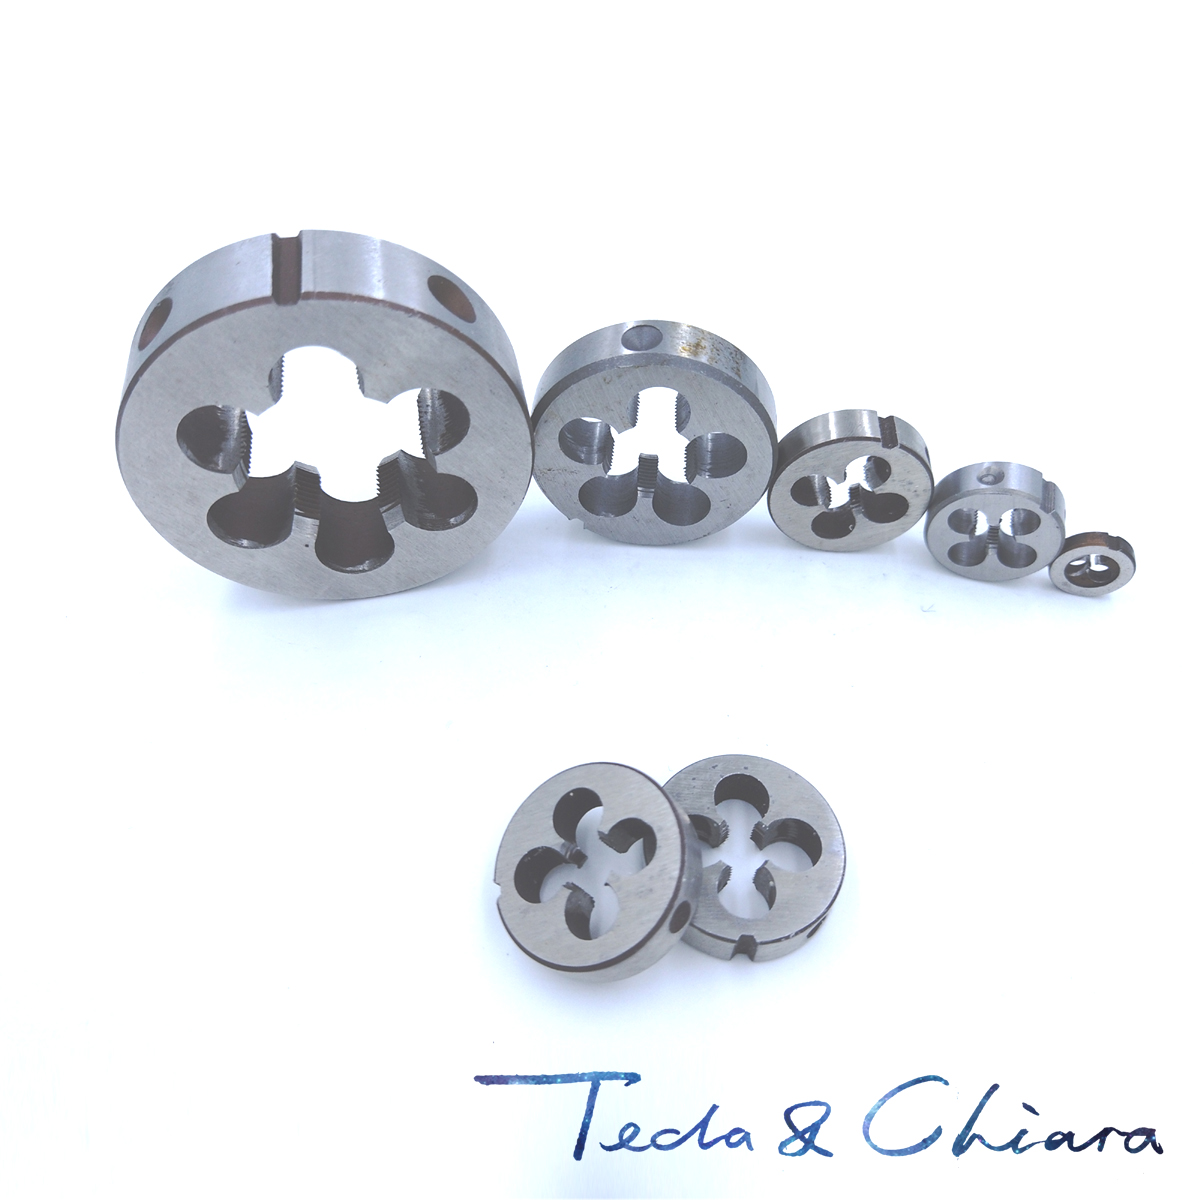 1Pc 7/16-14 7/16-16 7/16-18 7/16-20 UNC UNF UNS UN Right Hand Die Threading Tools Mold Machining 7/16 - 14 16 18 20 7/16